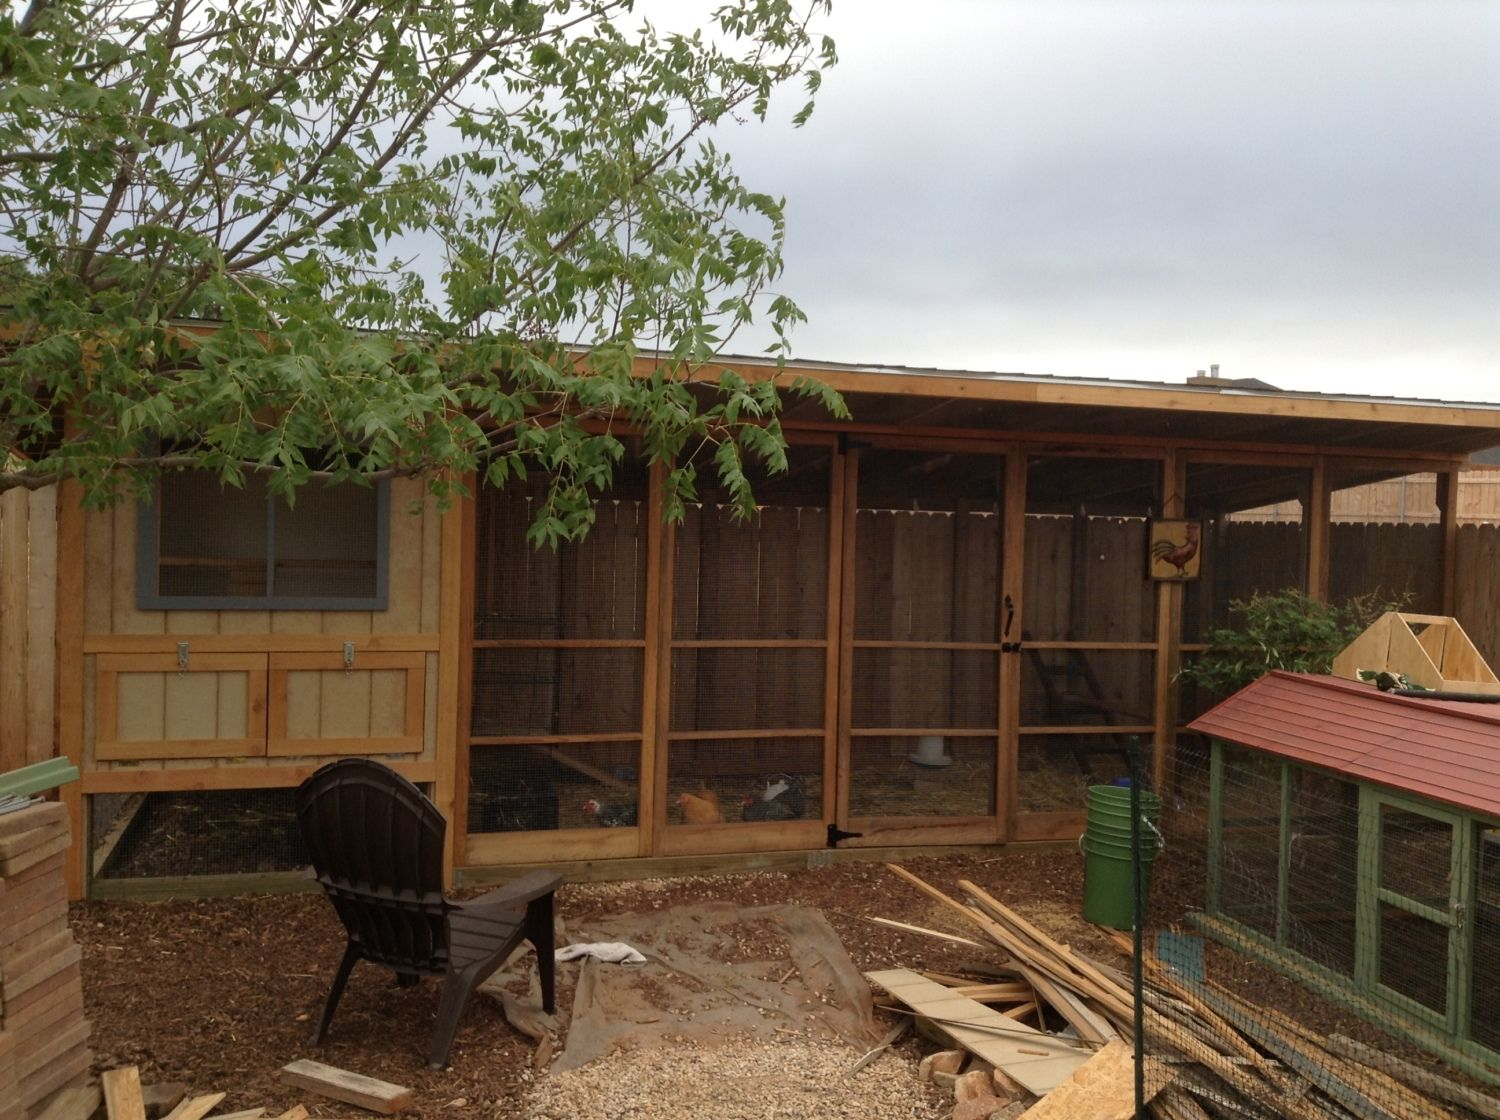 deluxe west texas coop backyard chickens